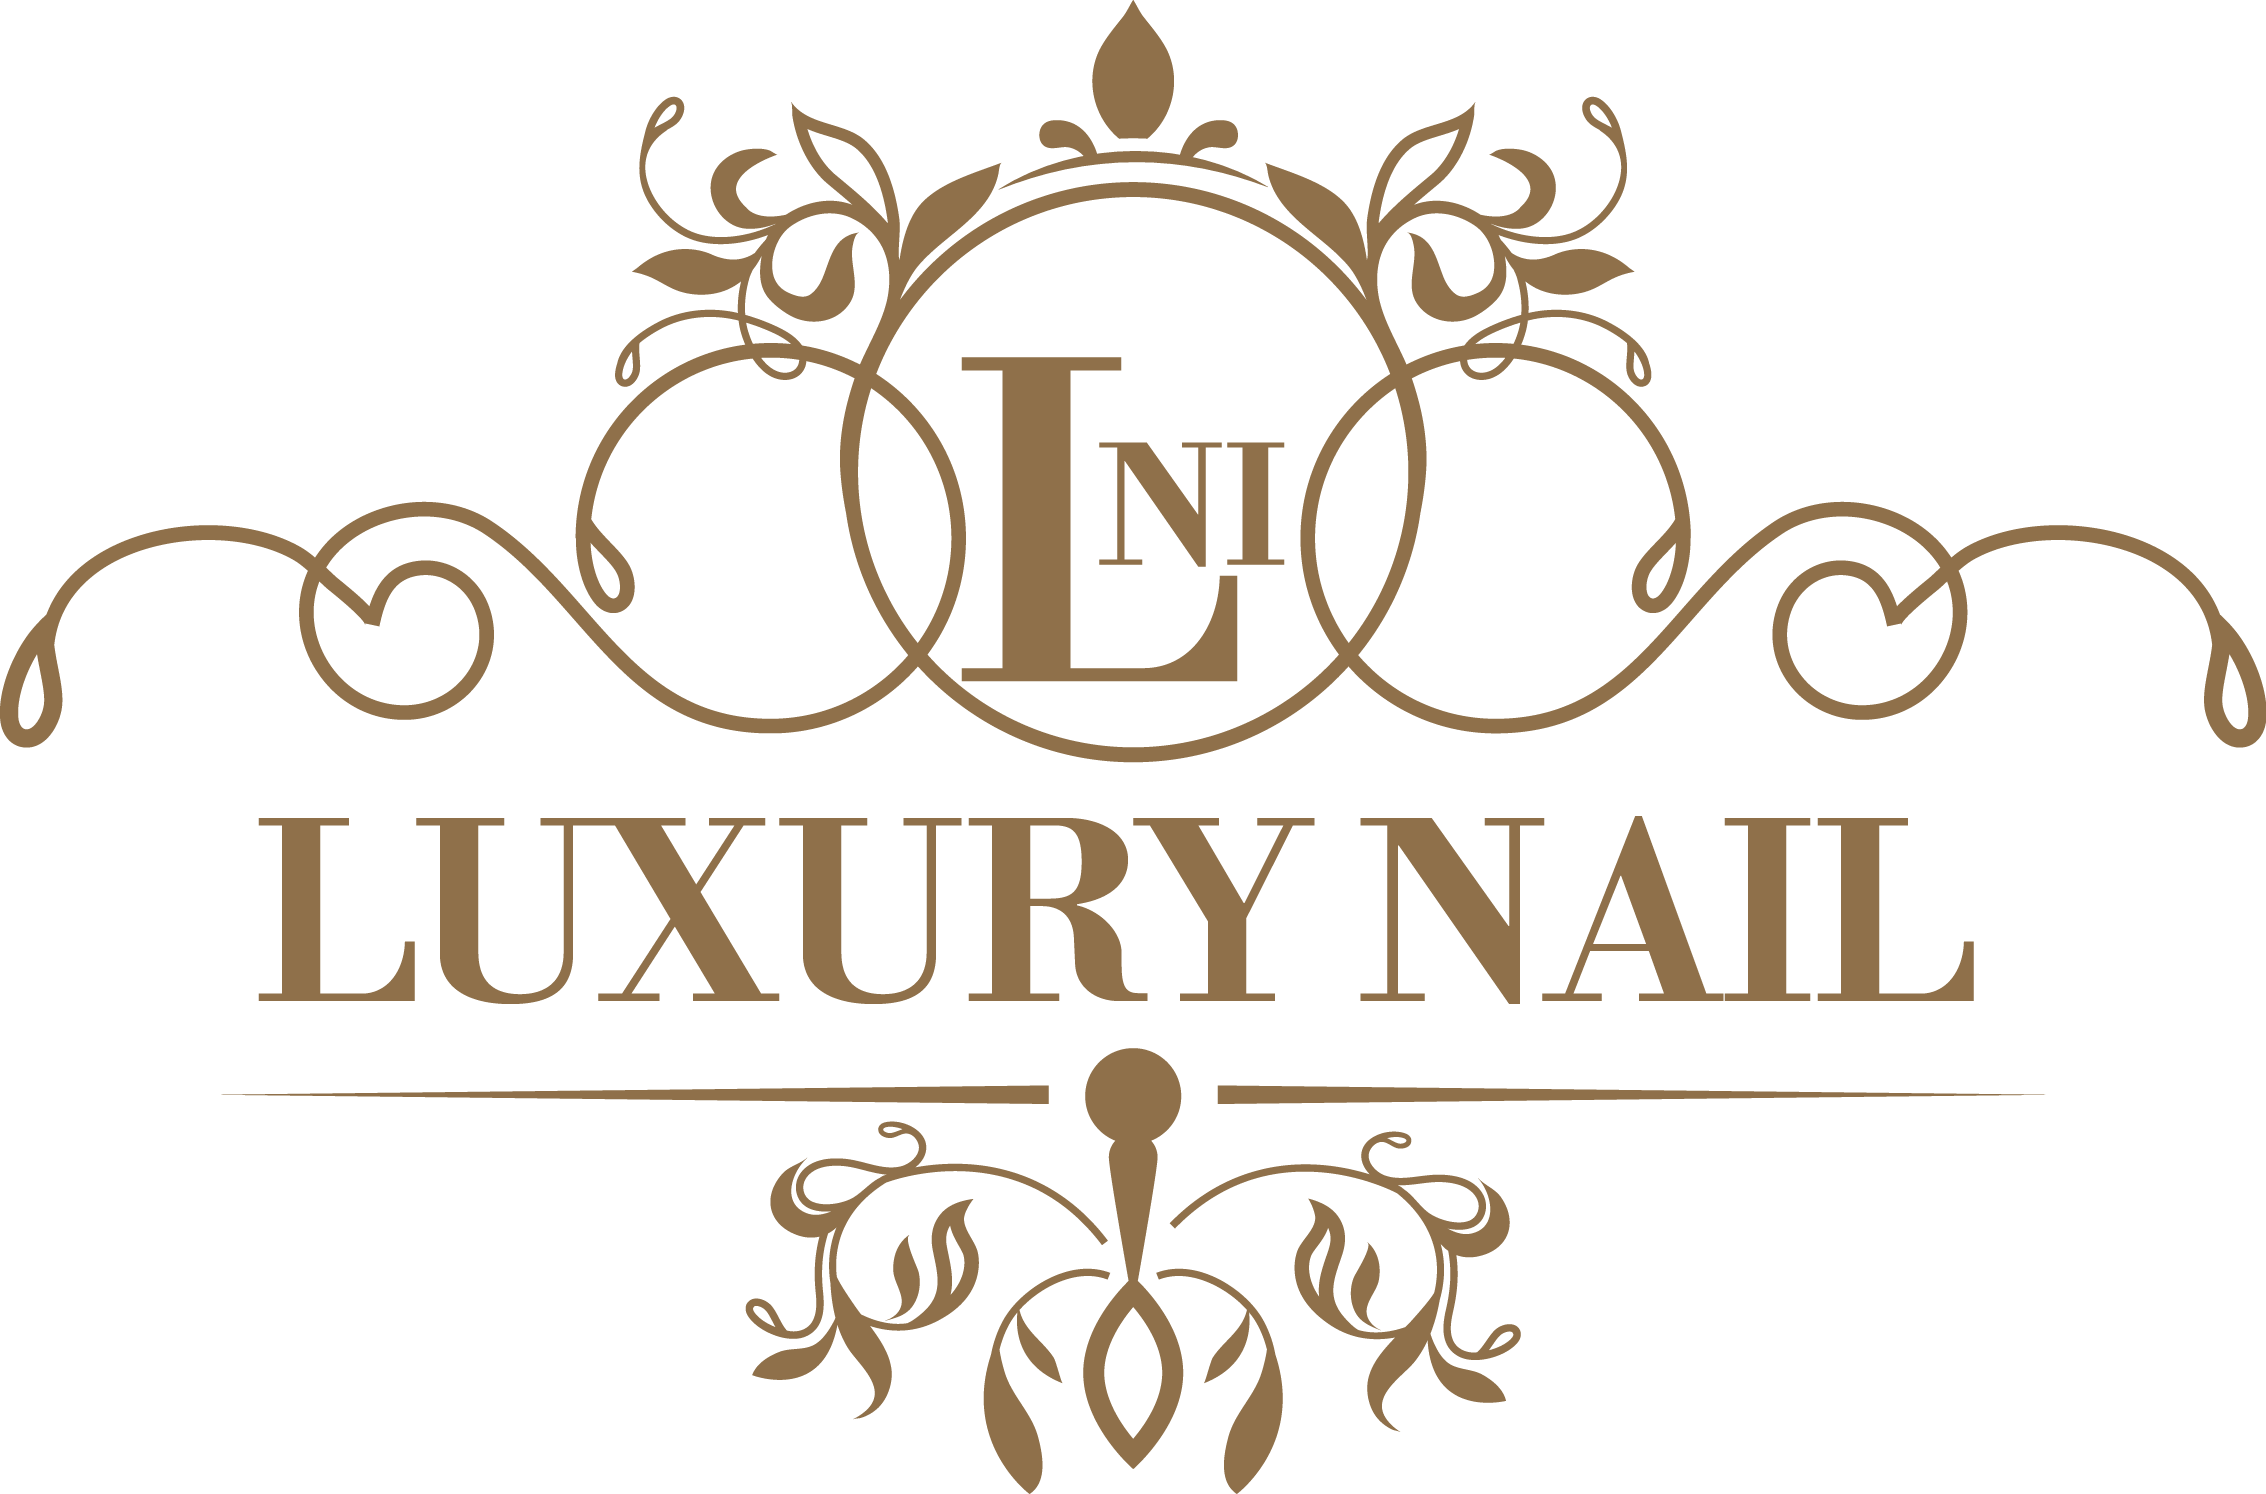 Luxury Nail - Welcome